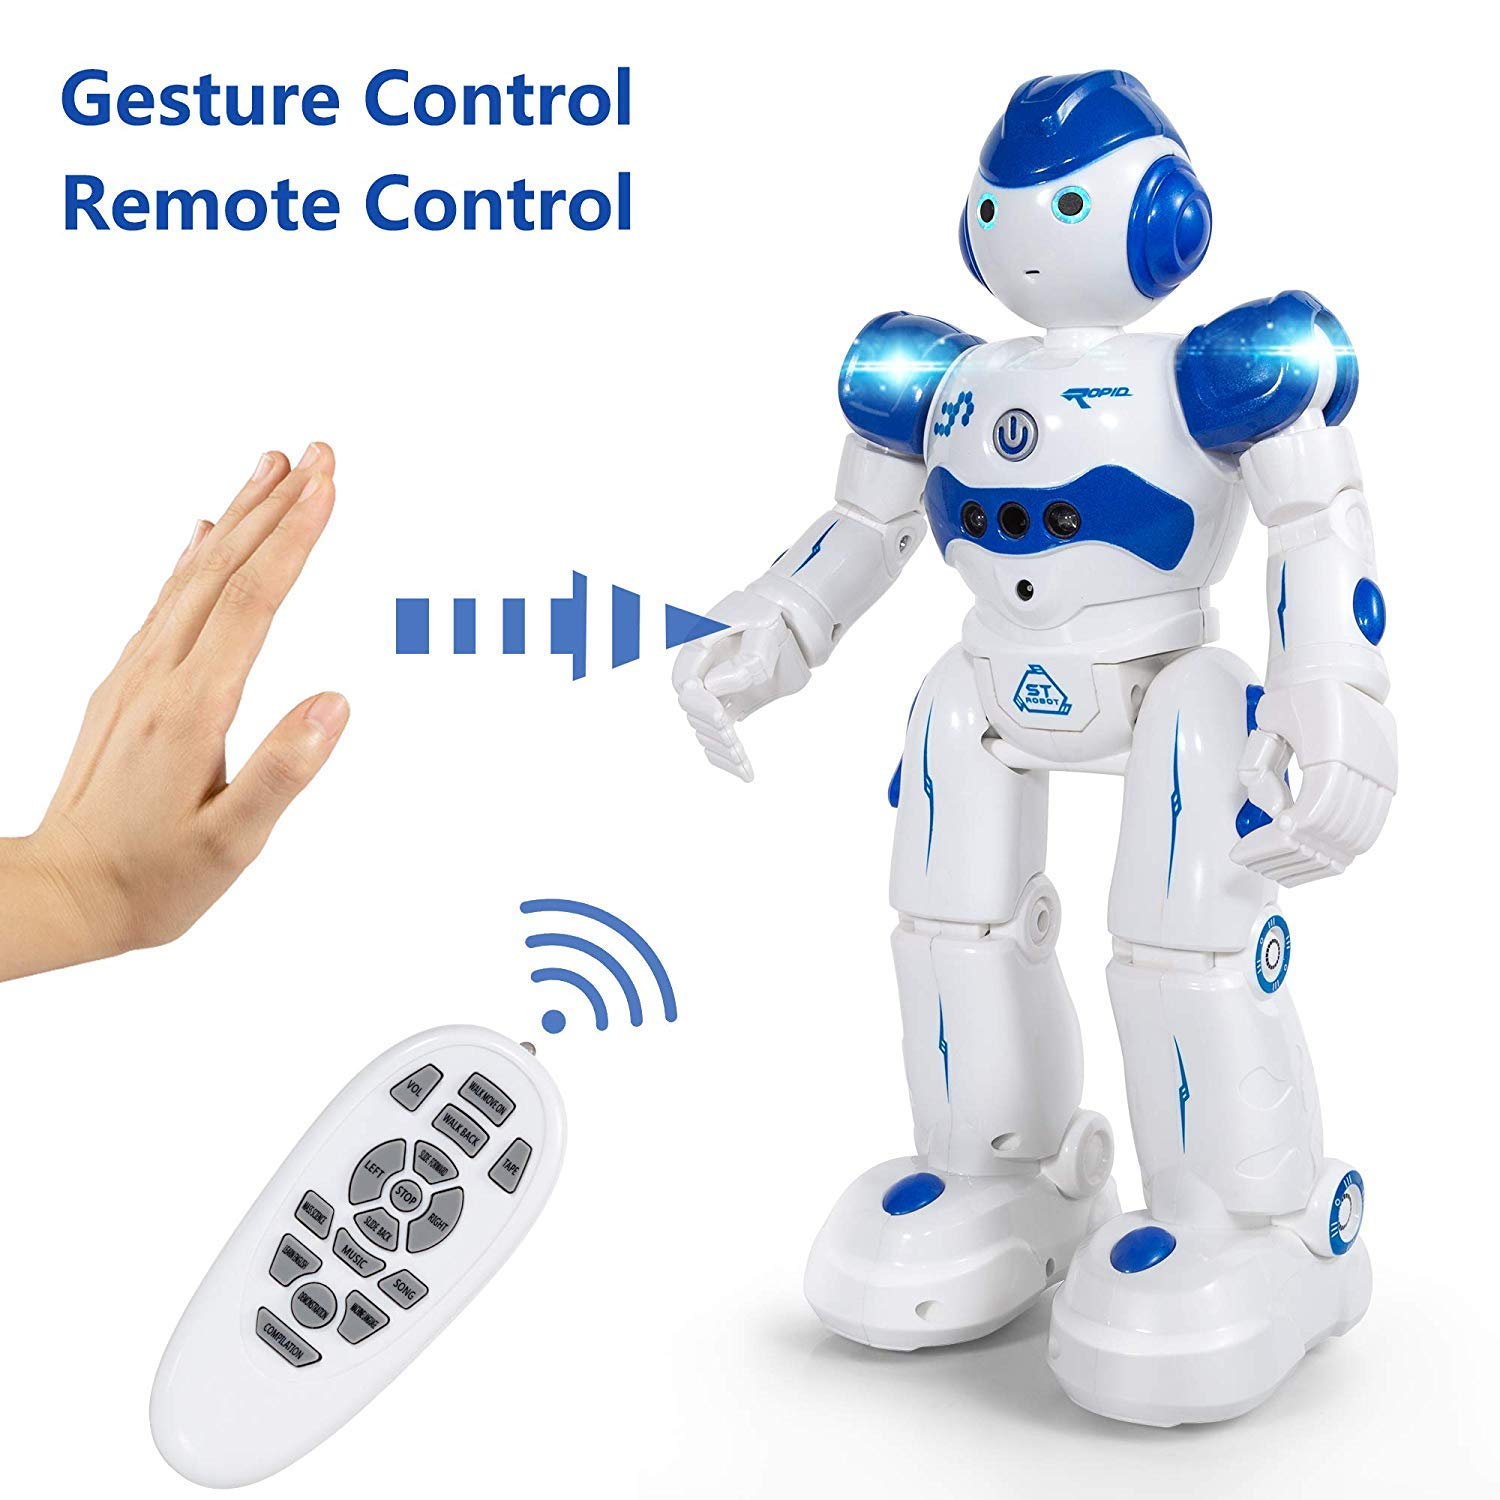 Taiker Remote Control Robot for Kids, Intellectual Gesture Sensor & RC Remote Control Rechargeable Robot Toys for Kids with Walking, Sliding, Turning, Singing, Dancing, Speaking and Teaching Science by Taiker (Image #1)